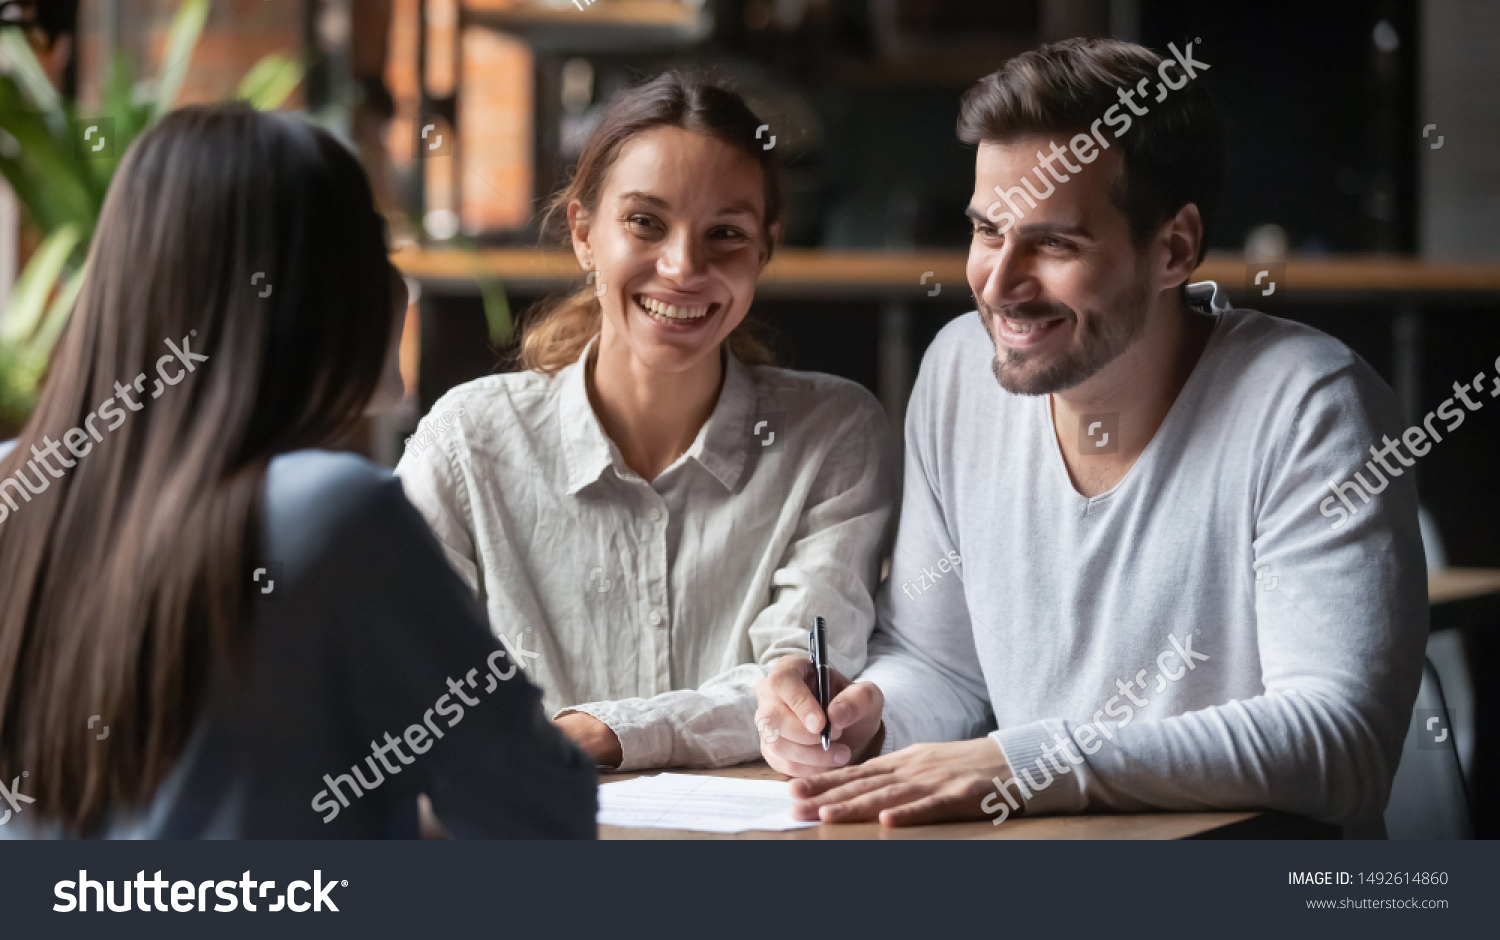 Happy young customers couple ready to sign bank loan agreement meeting broker agent, smiling husband and wife consider finance investing insurance contract deal decide on lease offer listen insurer #1492614860